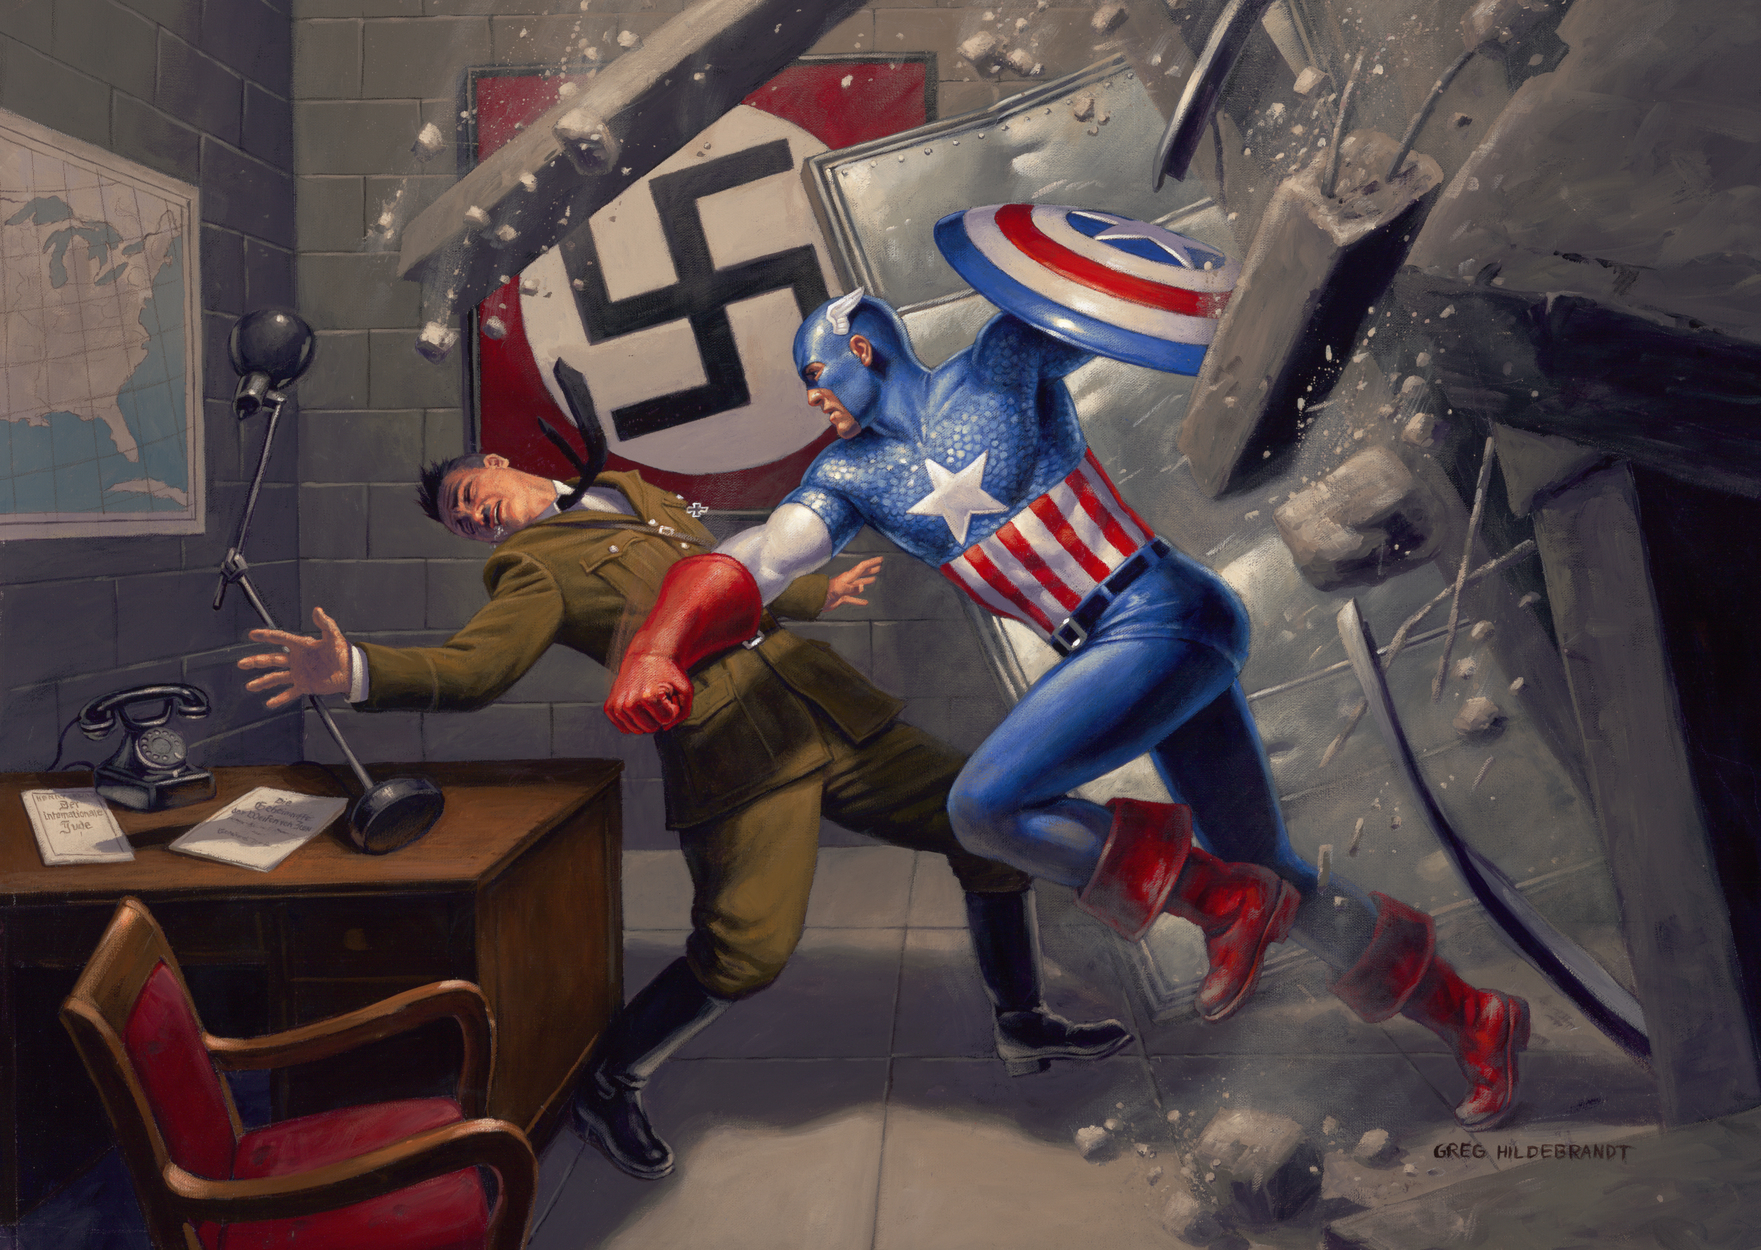 Captain America vs. Hitler Artwork by Greg Hildebrandt